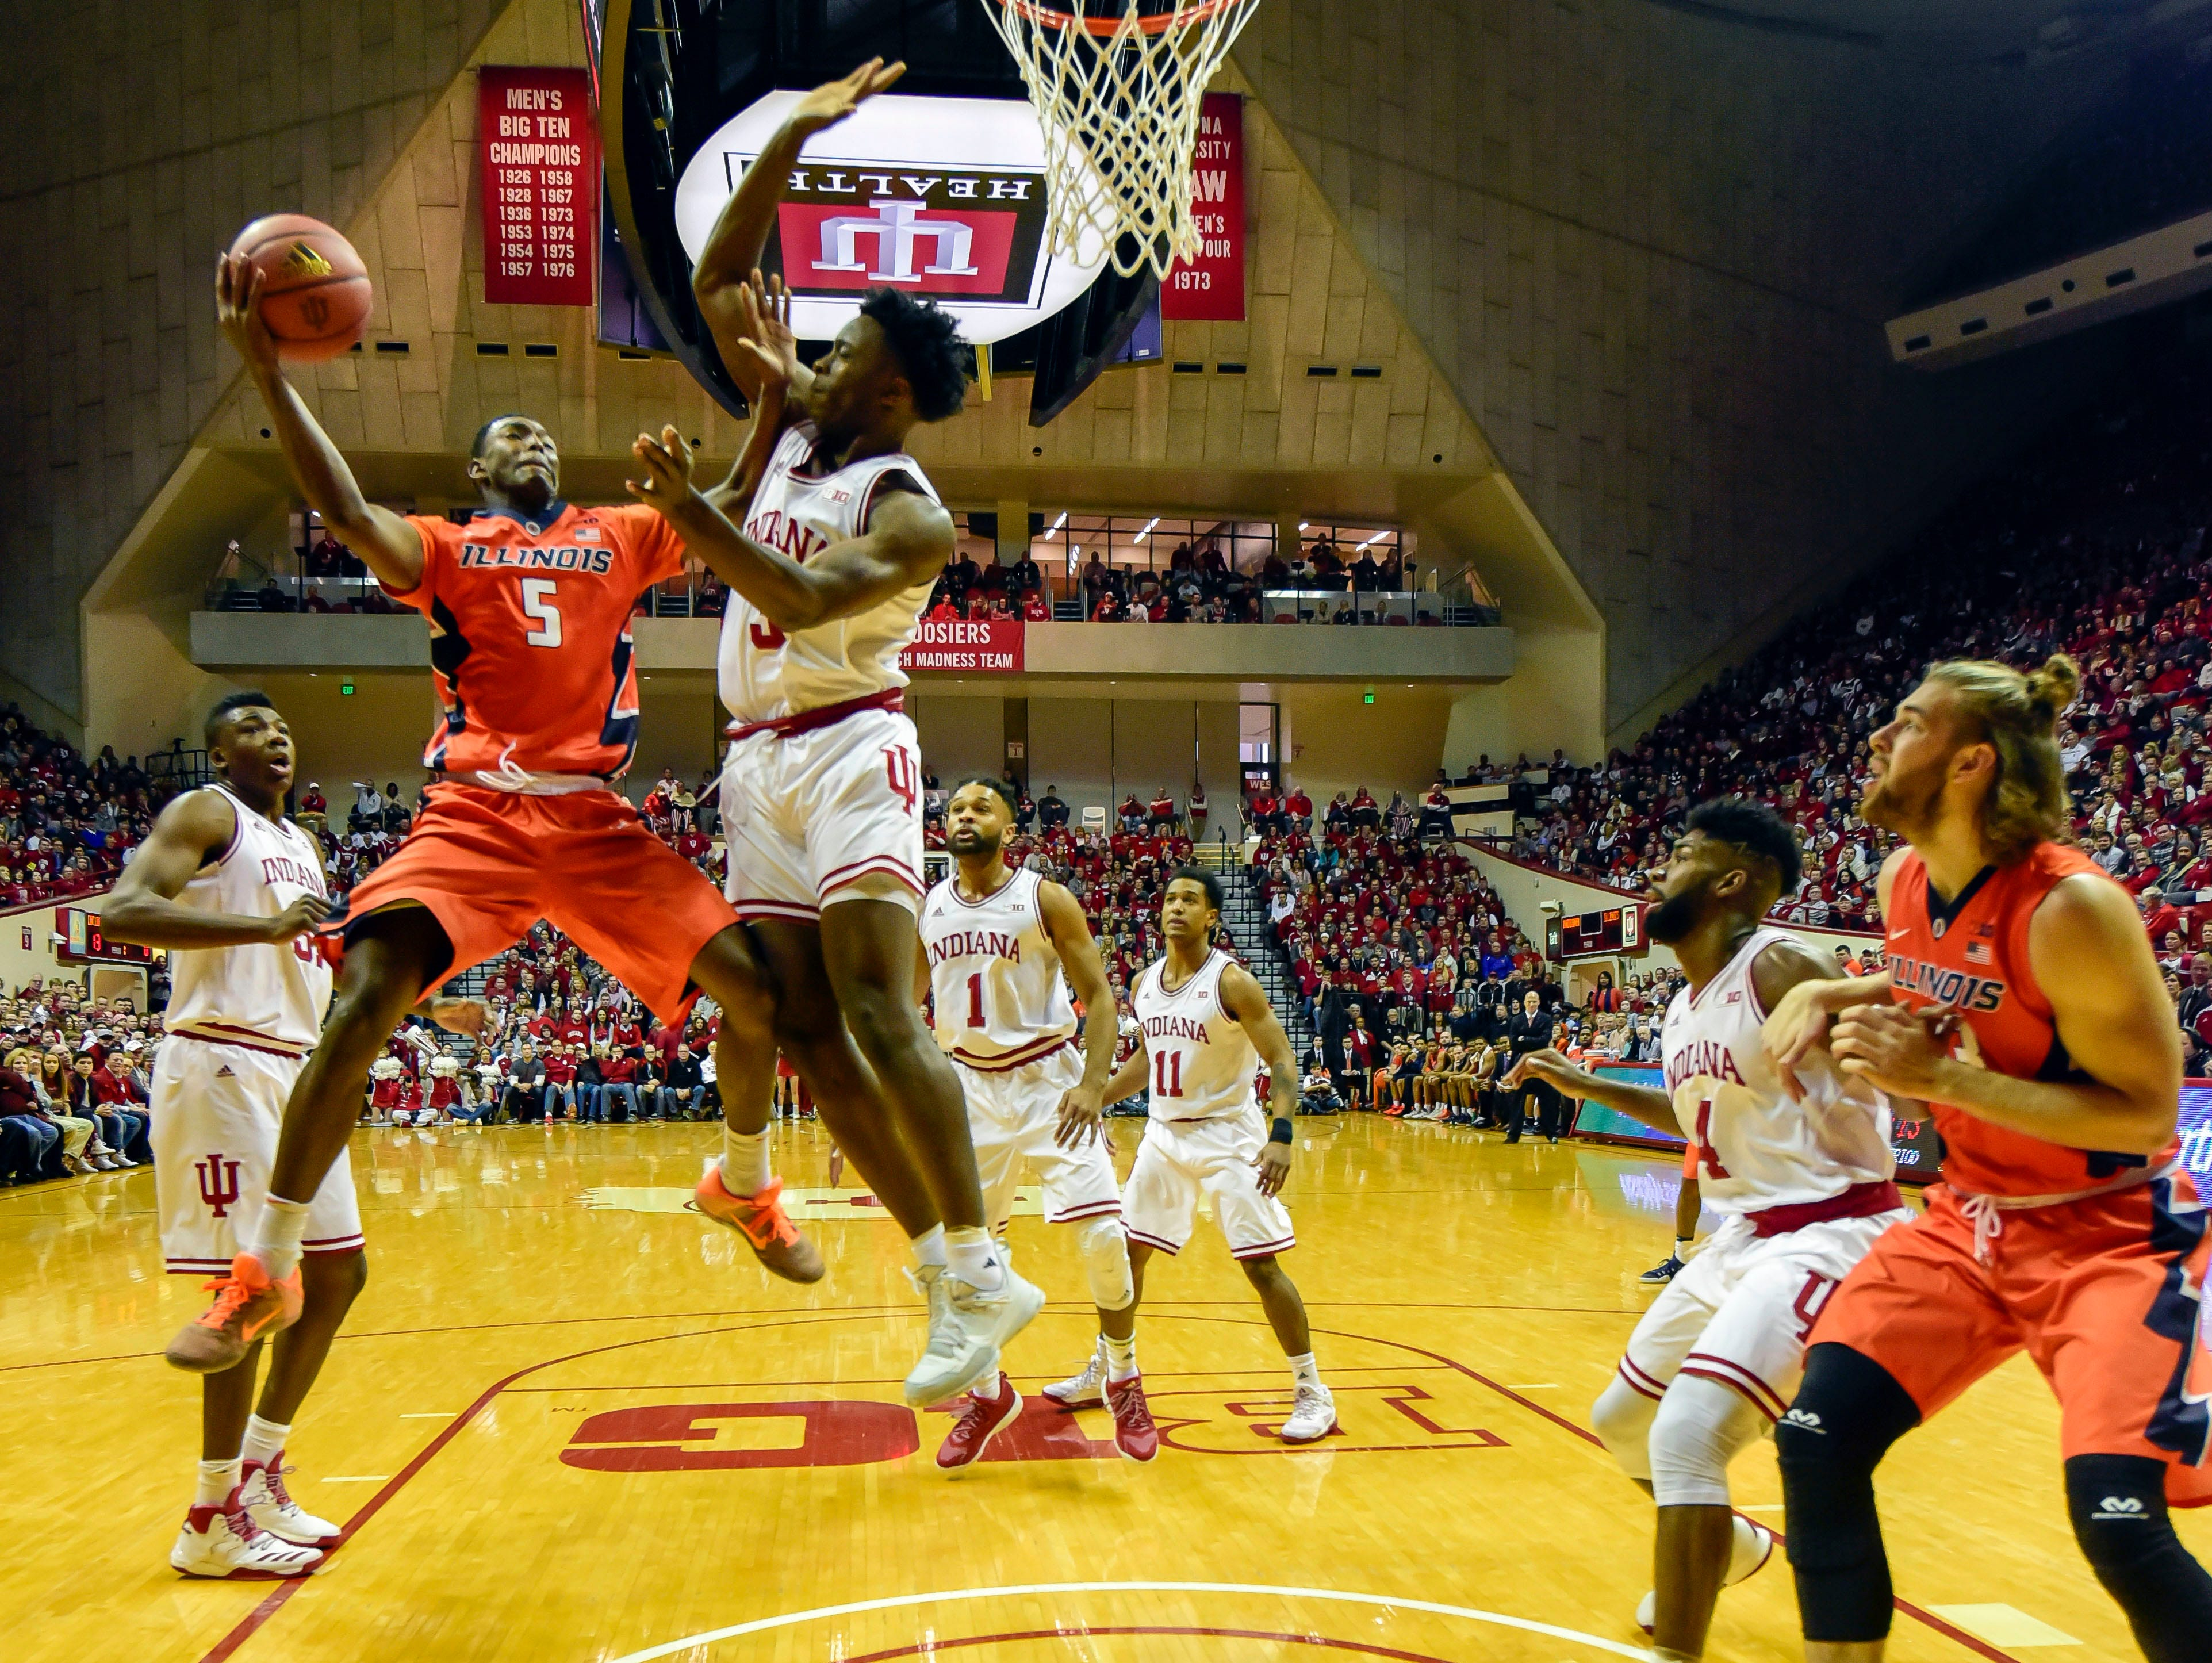 Jan 7, 2017; Bloomington, IN, USA; Illinois Fighting Illini guard Jalen Coleman-Lands (5) attempts a shot against Indiana Hoosiers forward OG Anunoby (3) during the first half of the game at Assembly Hall. The Indiana Hoosiers defeated the Illinois Fighting Illini 96 to 80. Mandatory Credit: Marc Lebryk-USA TODAY Sports